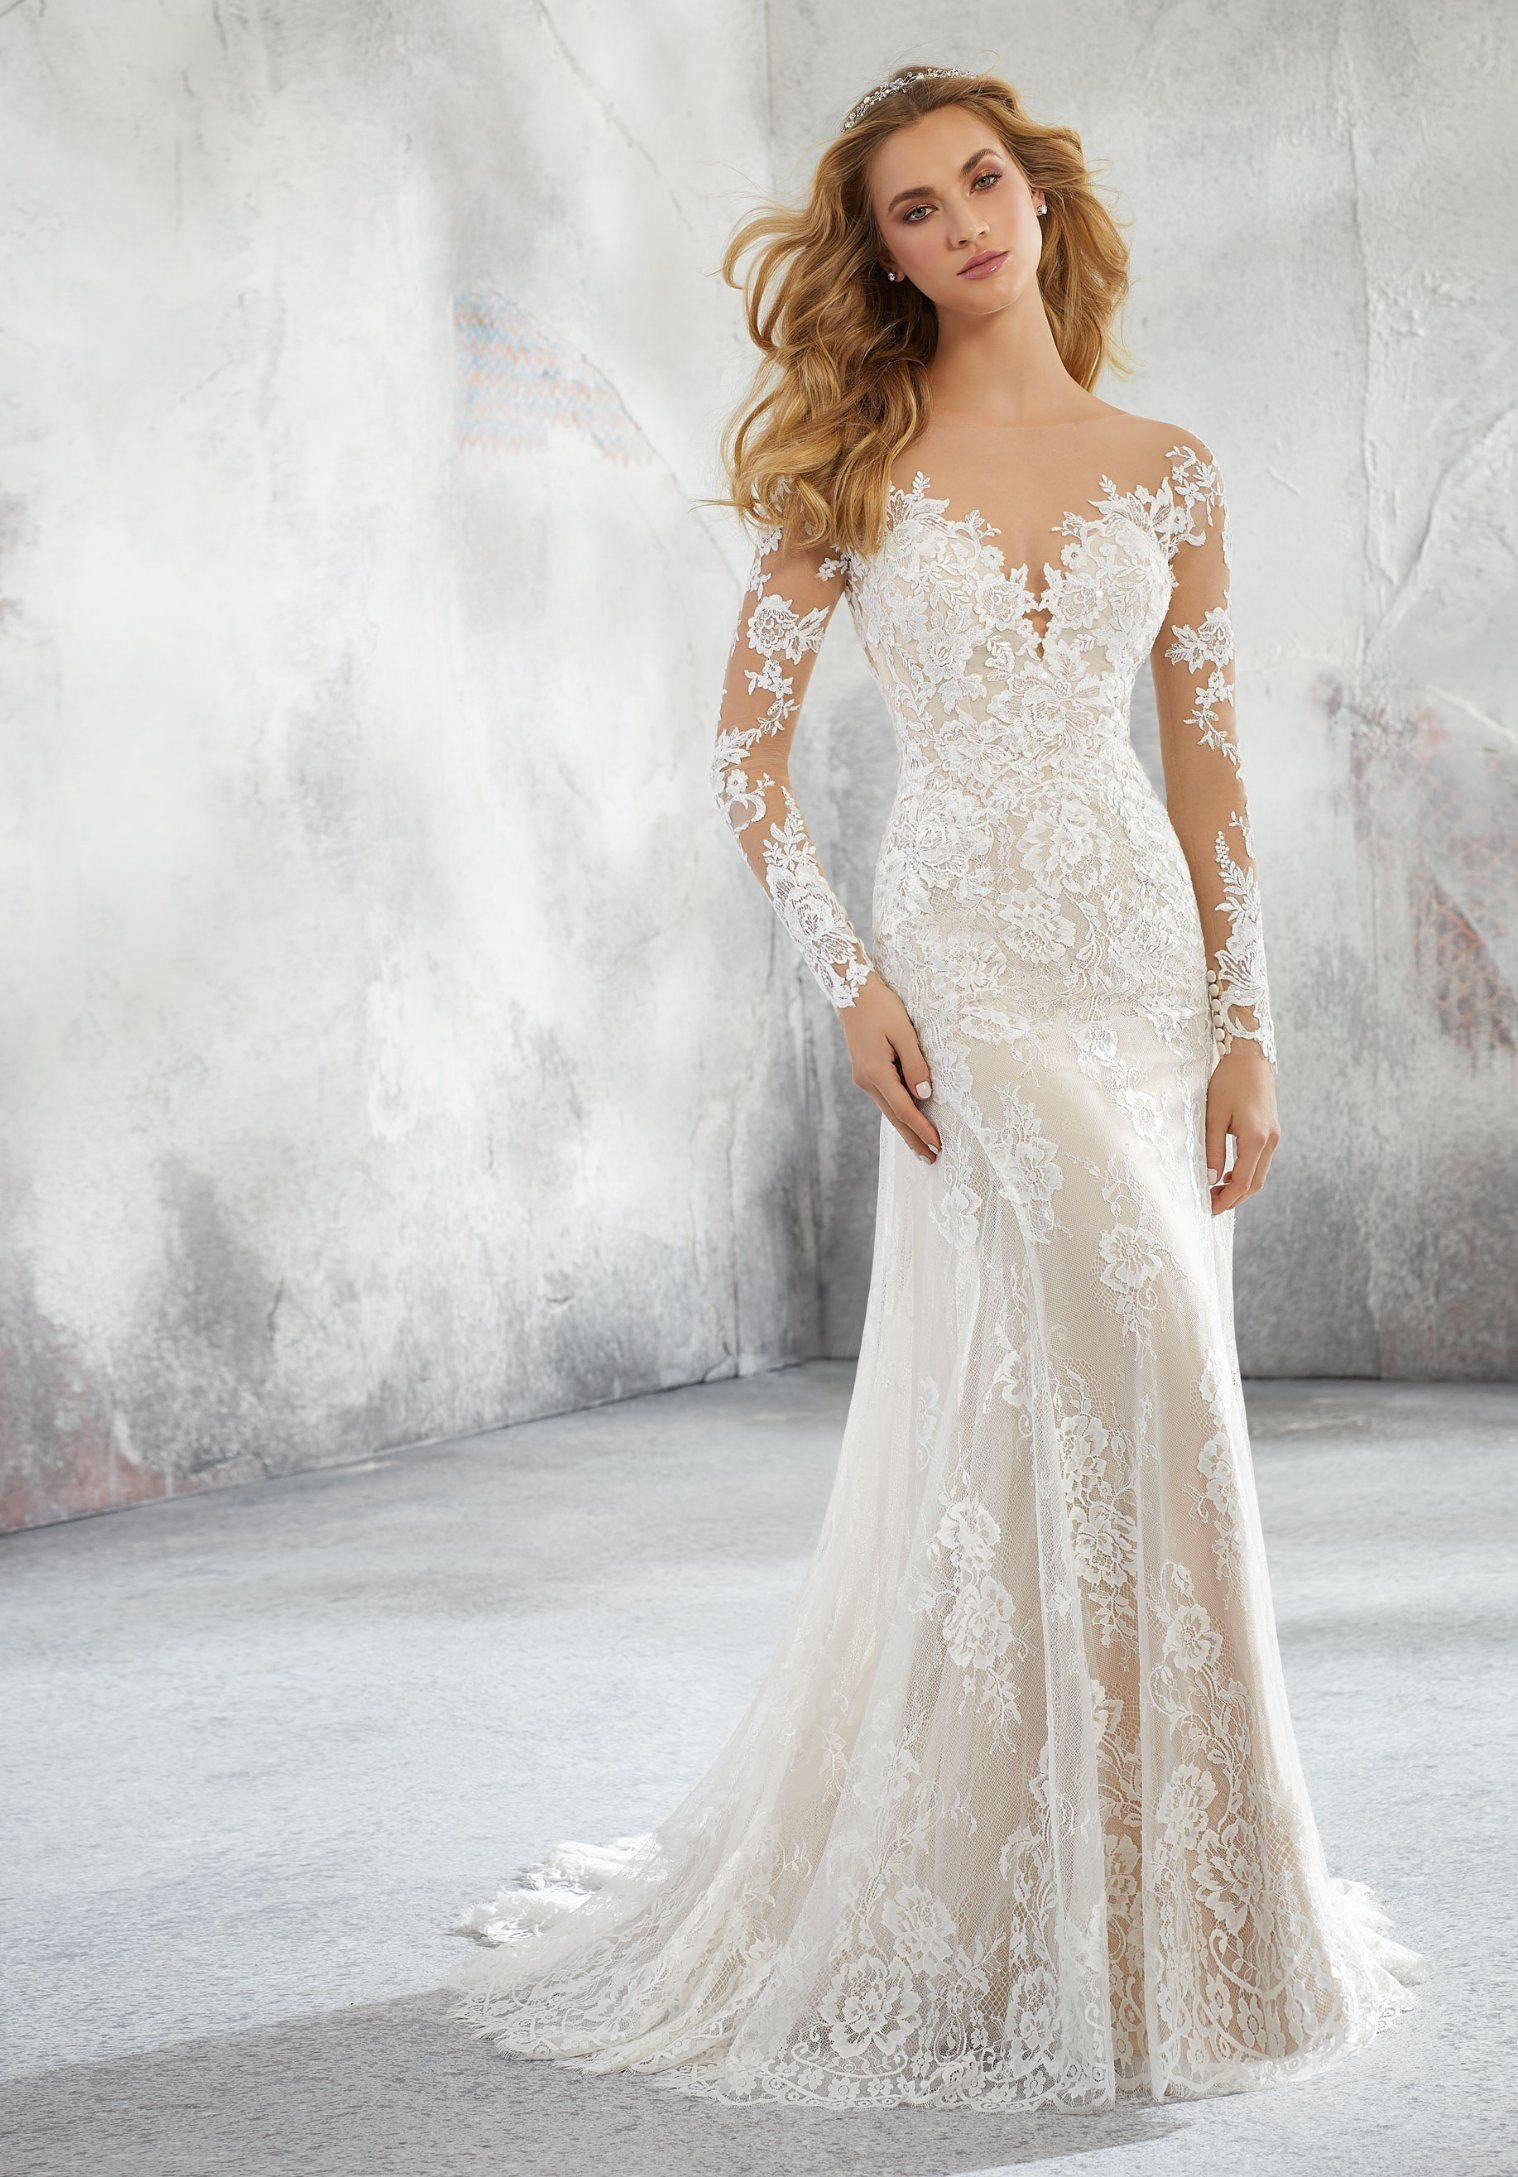 2019 Lace Long Sleeve Vintage A Line Party Dress: China Mermaid Bridal Gowns Long Sleeves Lace Wedding